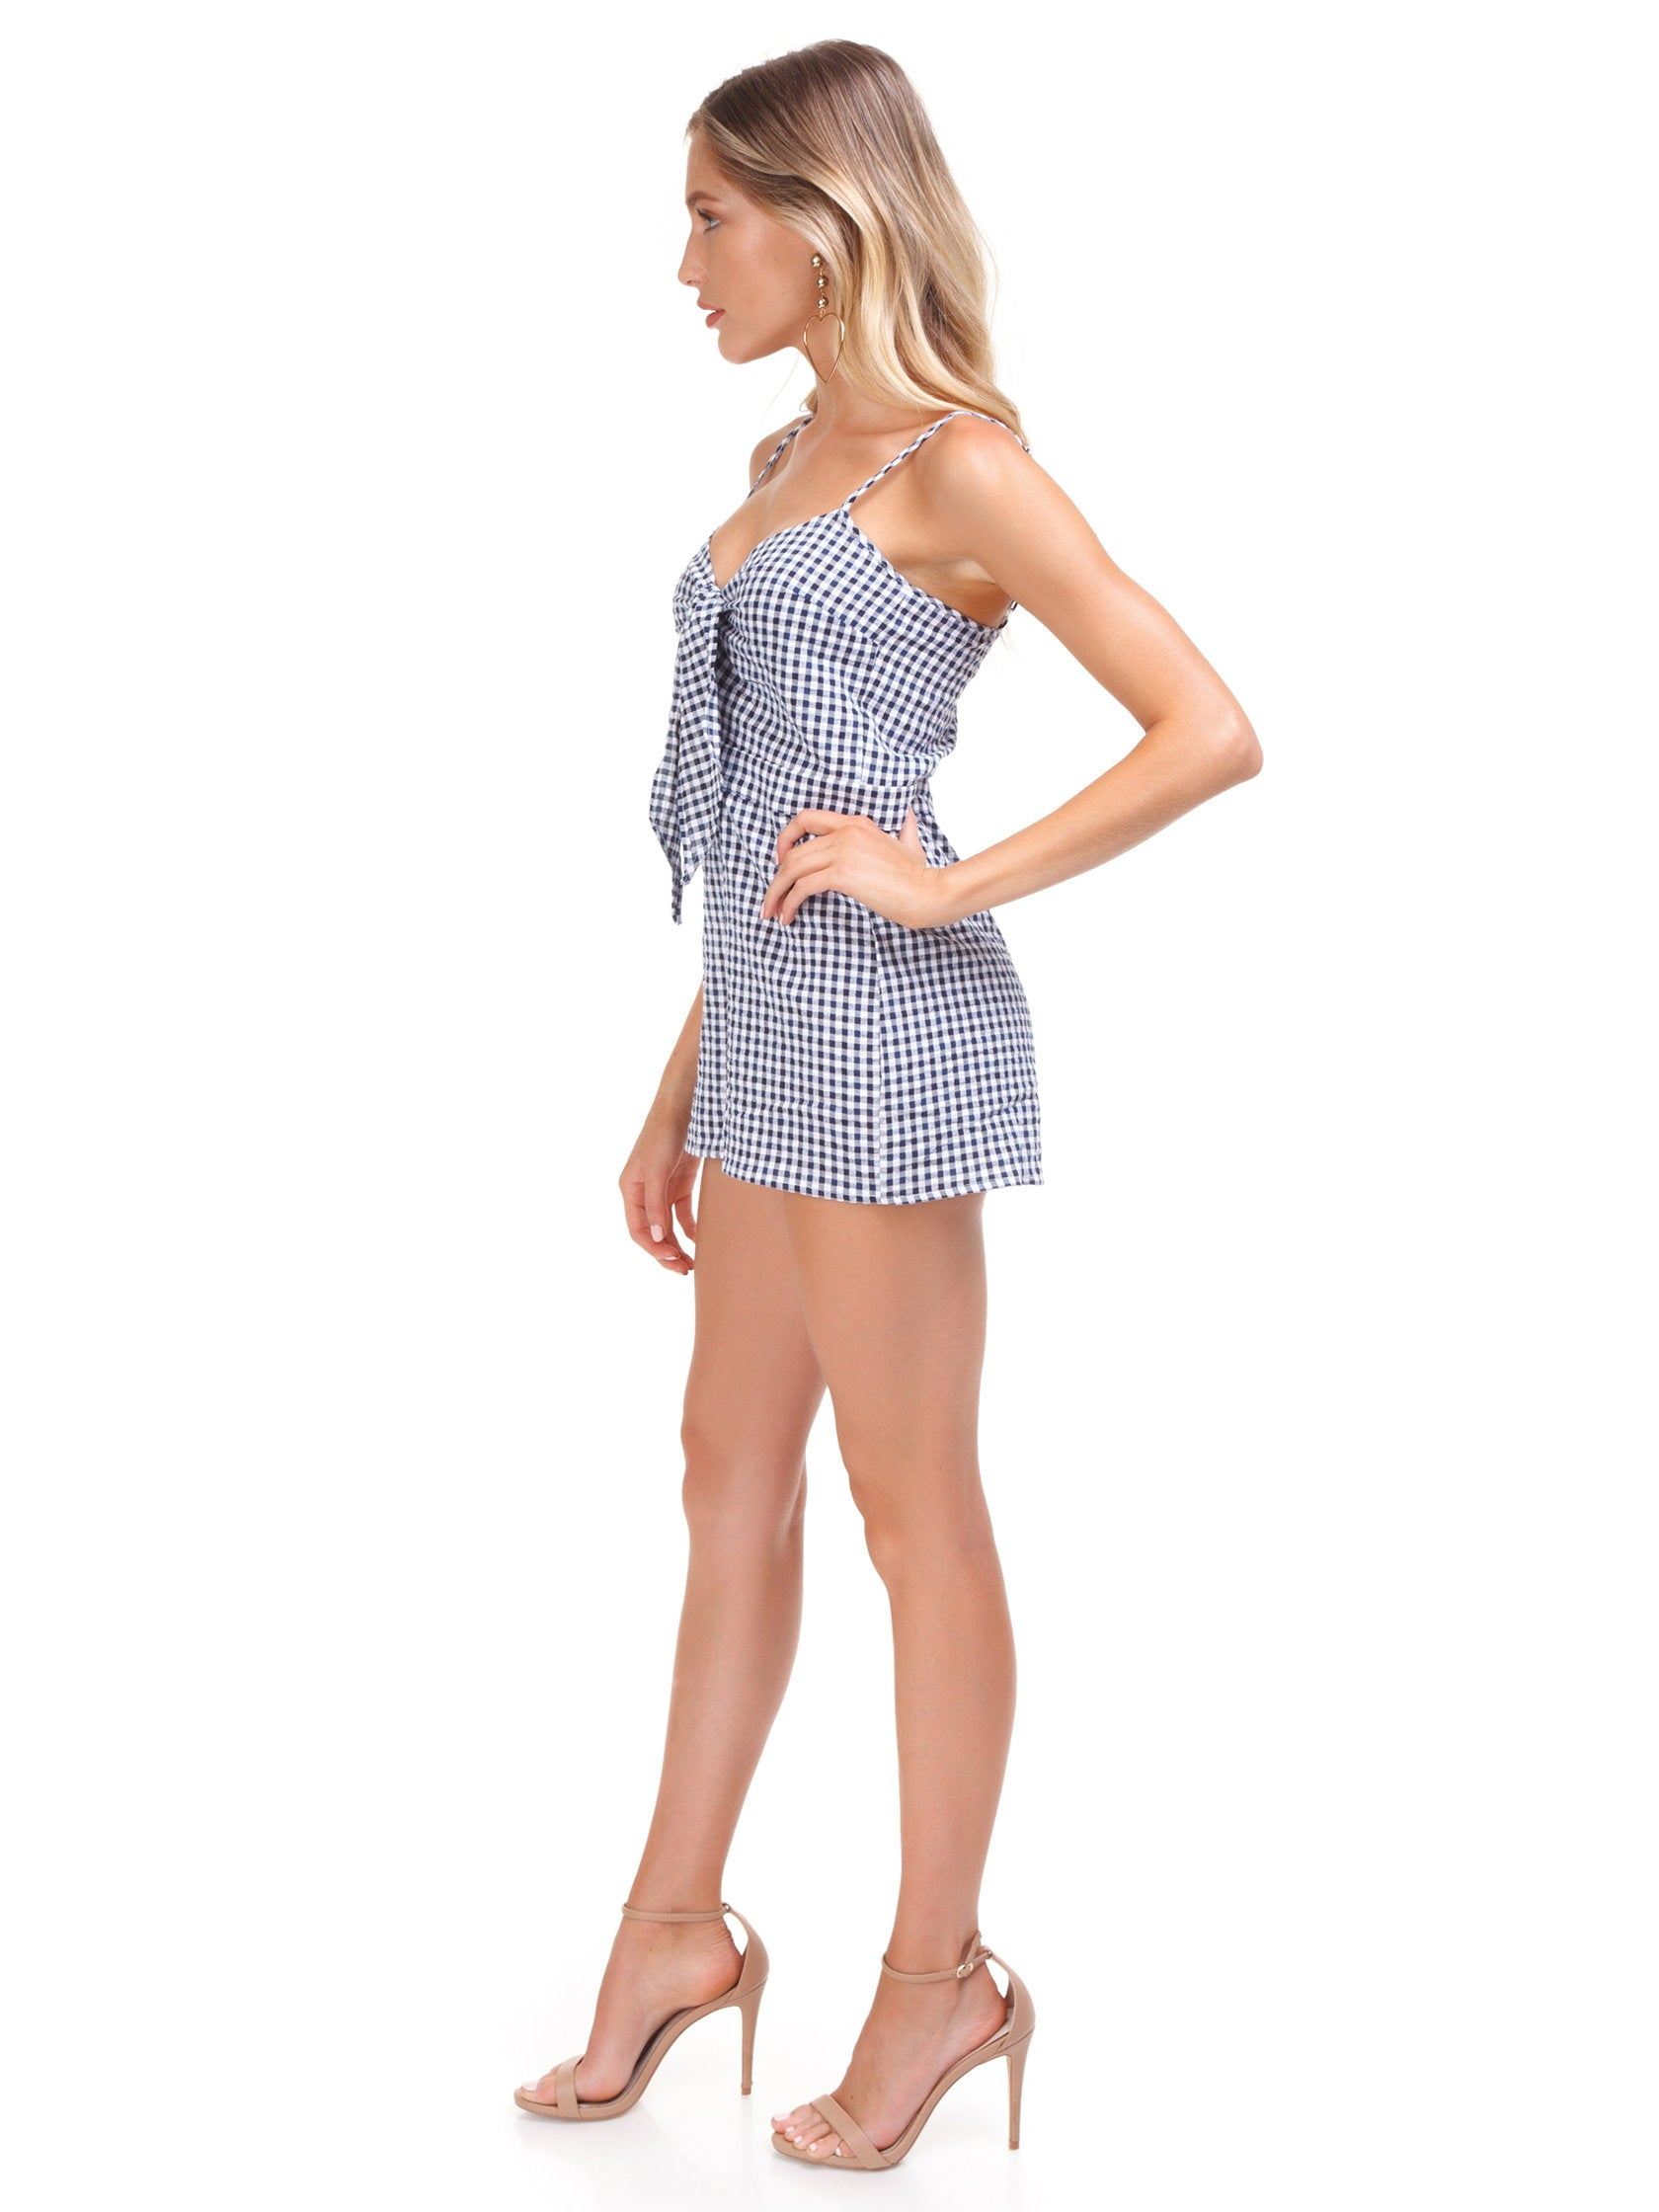 Woman wearing a romper rental from Blue Life called Tied Up Romper